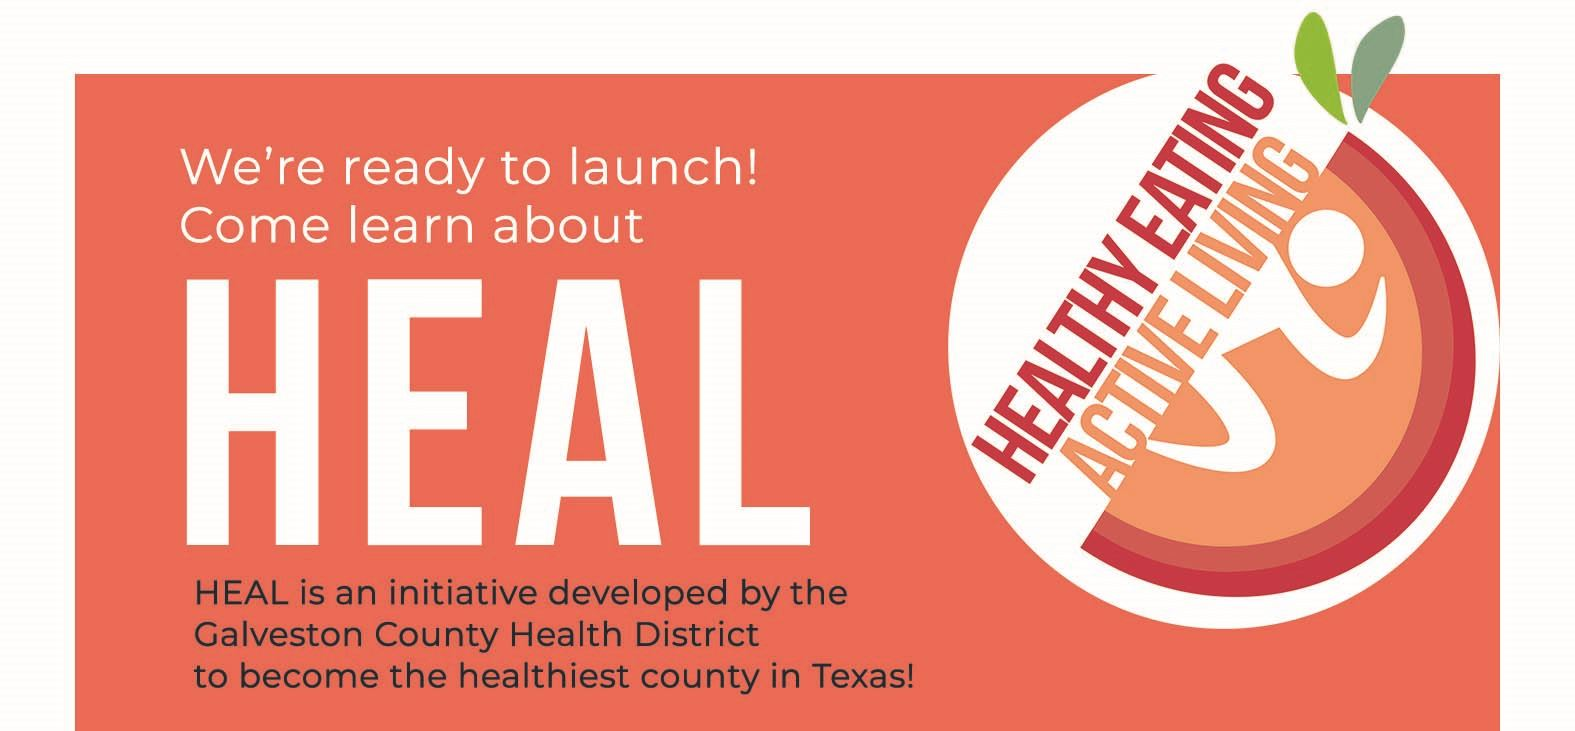 Galveston County Health District Heal Launch graphic